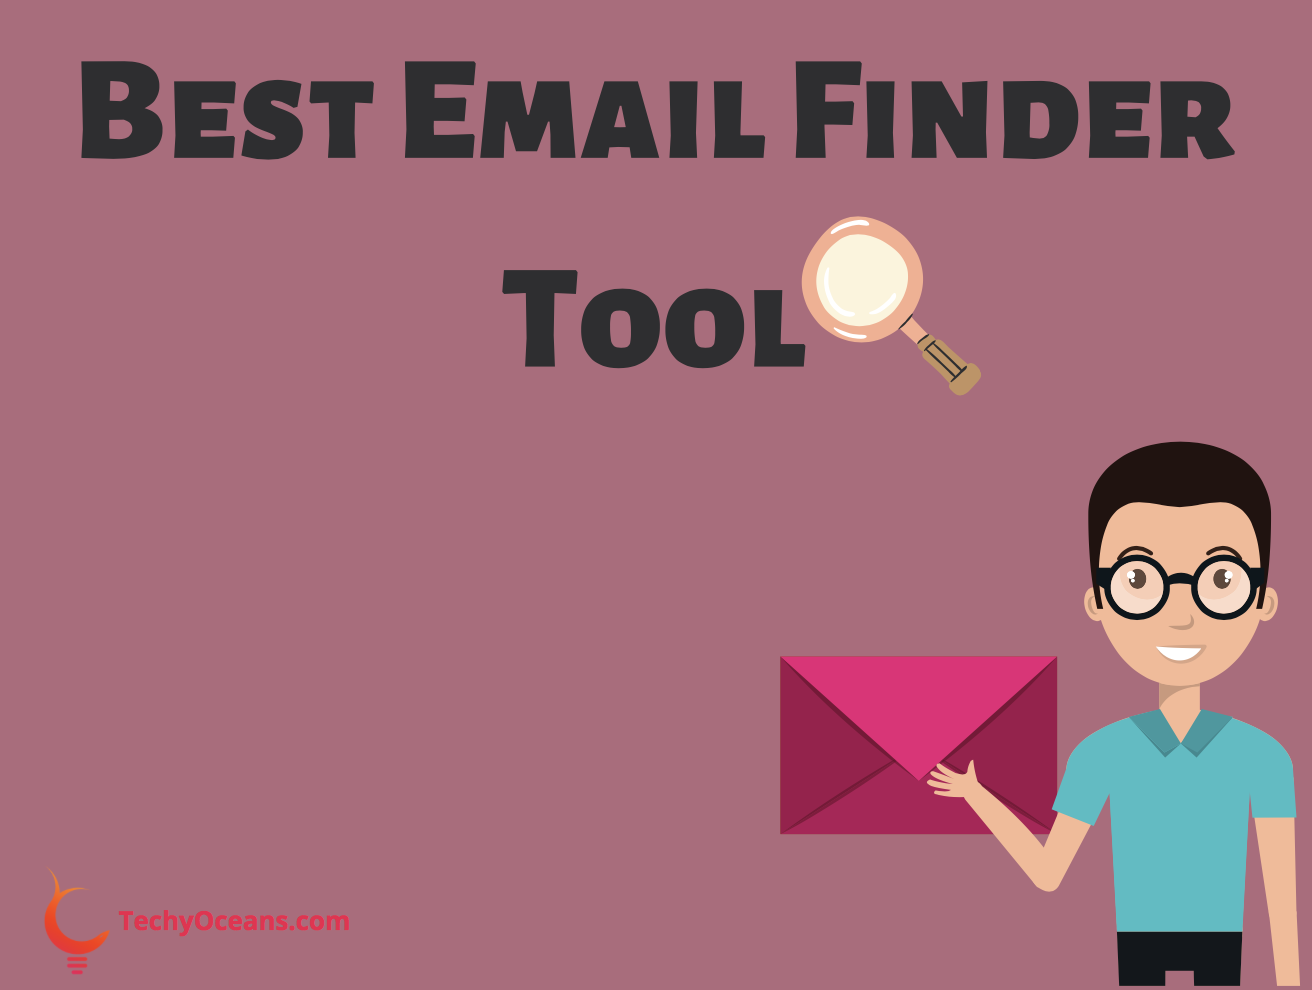 [UPDATED] 12 Best Email Finder Tools To LookUp Anyone's Email